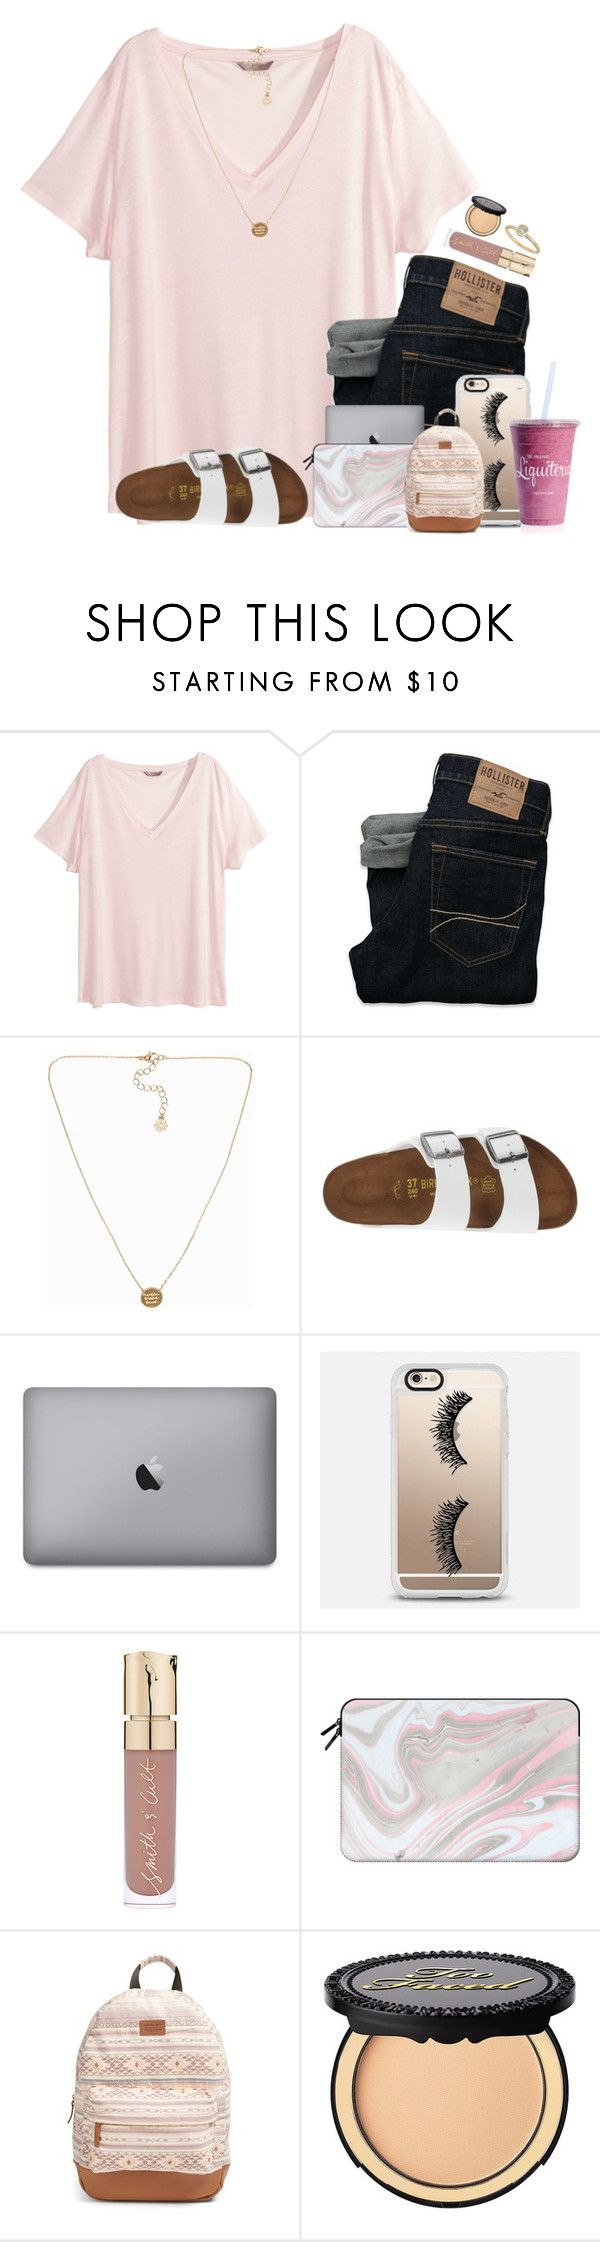 """""""Sophmore year, so far so good    Karina Celeste"""" by those-preppy-gals ❤ liked on Polyvore featuring H&M, Hollister Co., Pieces, Birkenstock, Casetify, Smith & Cult, Rip Curl, Too Faced Cosmetics and Lord & Taylor"""